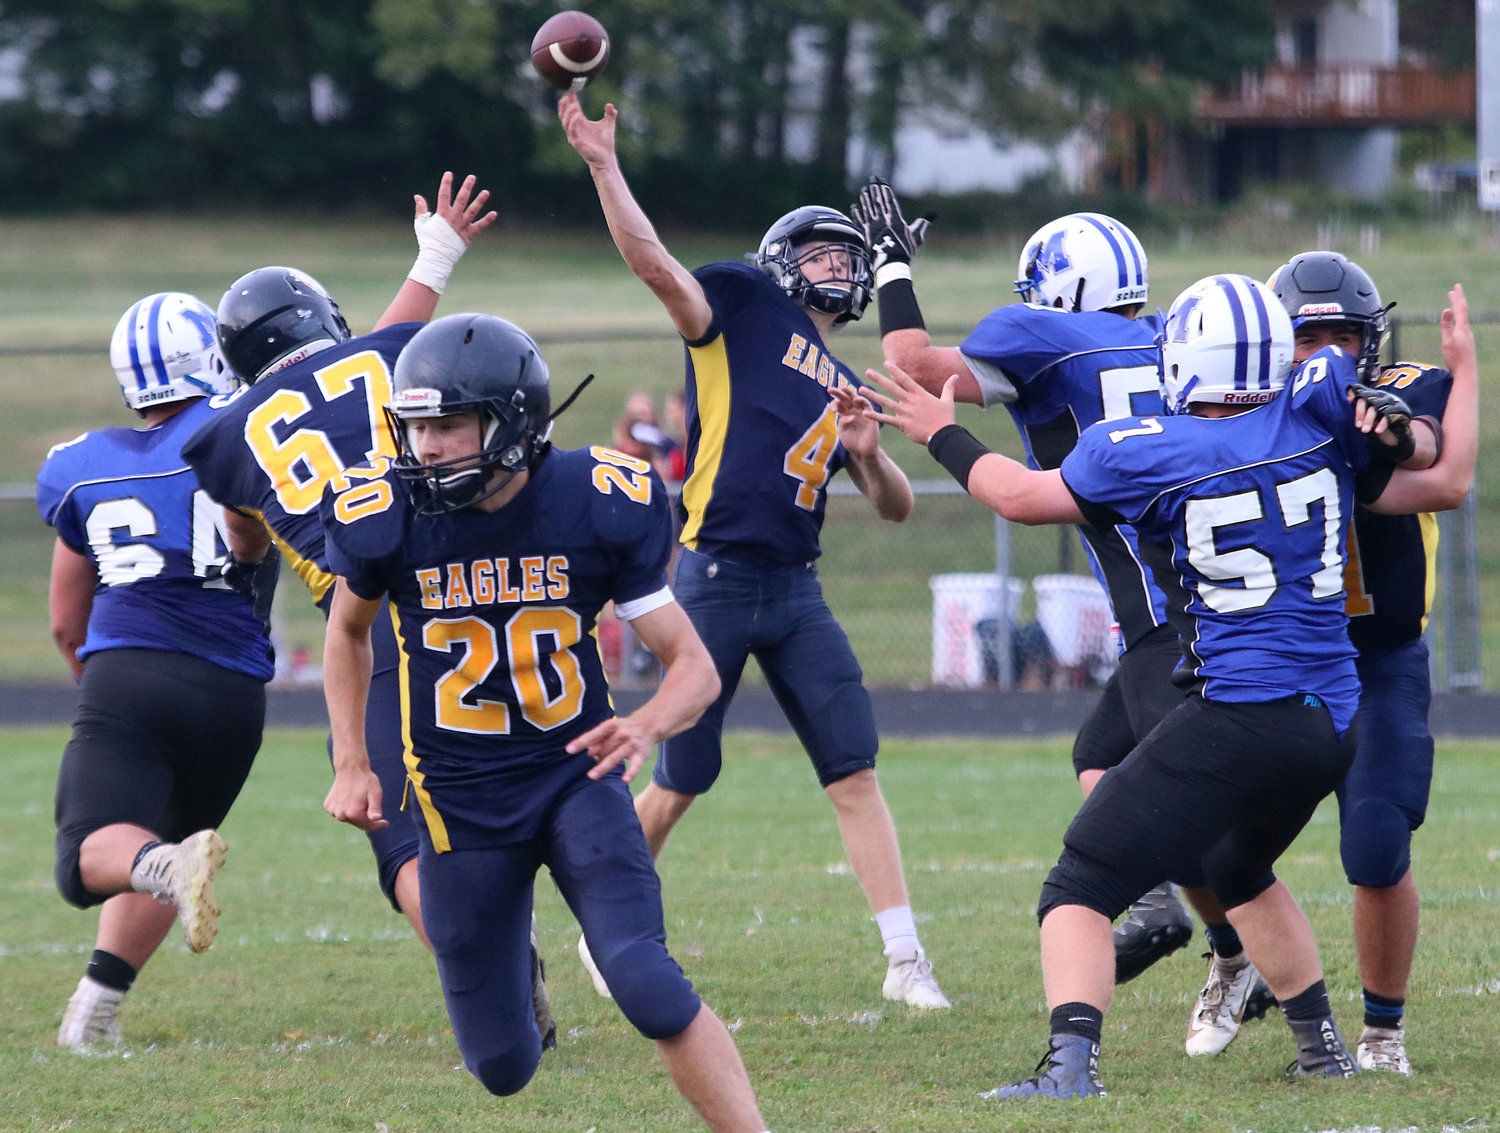 Barrington quarterback Brigham Dunphy (4) unleashes a pass during the Injury Fund game last Thursday. The Eagles' Bryan Ivatts (20) is shown running a route in the foreground.